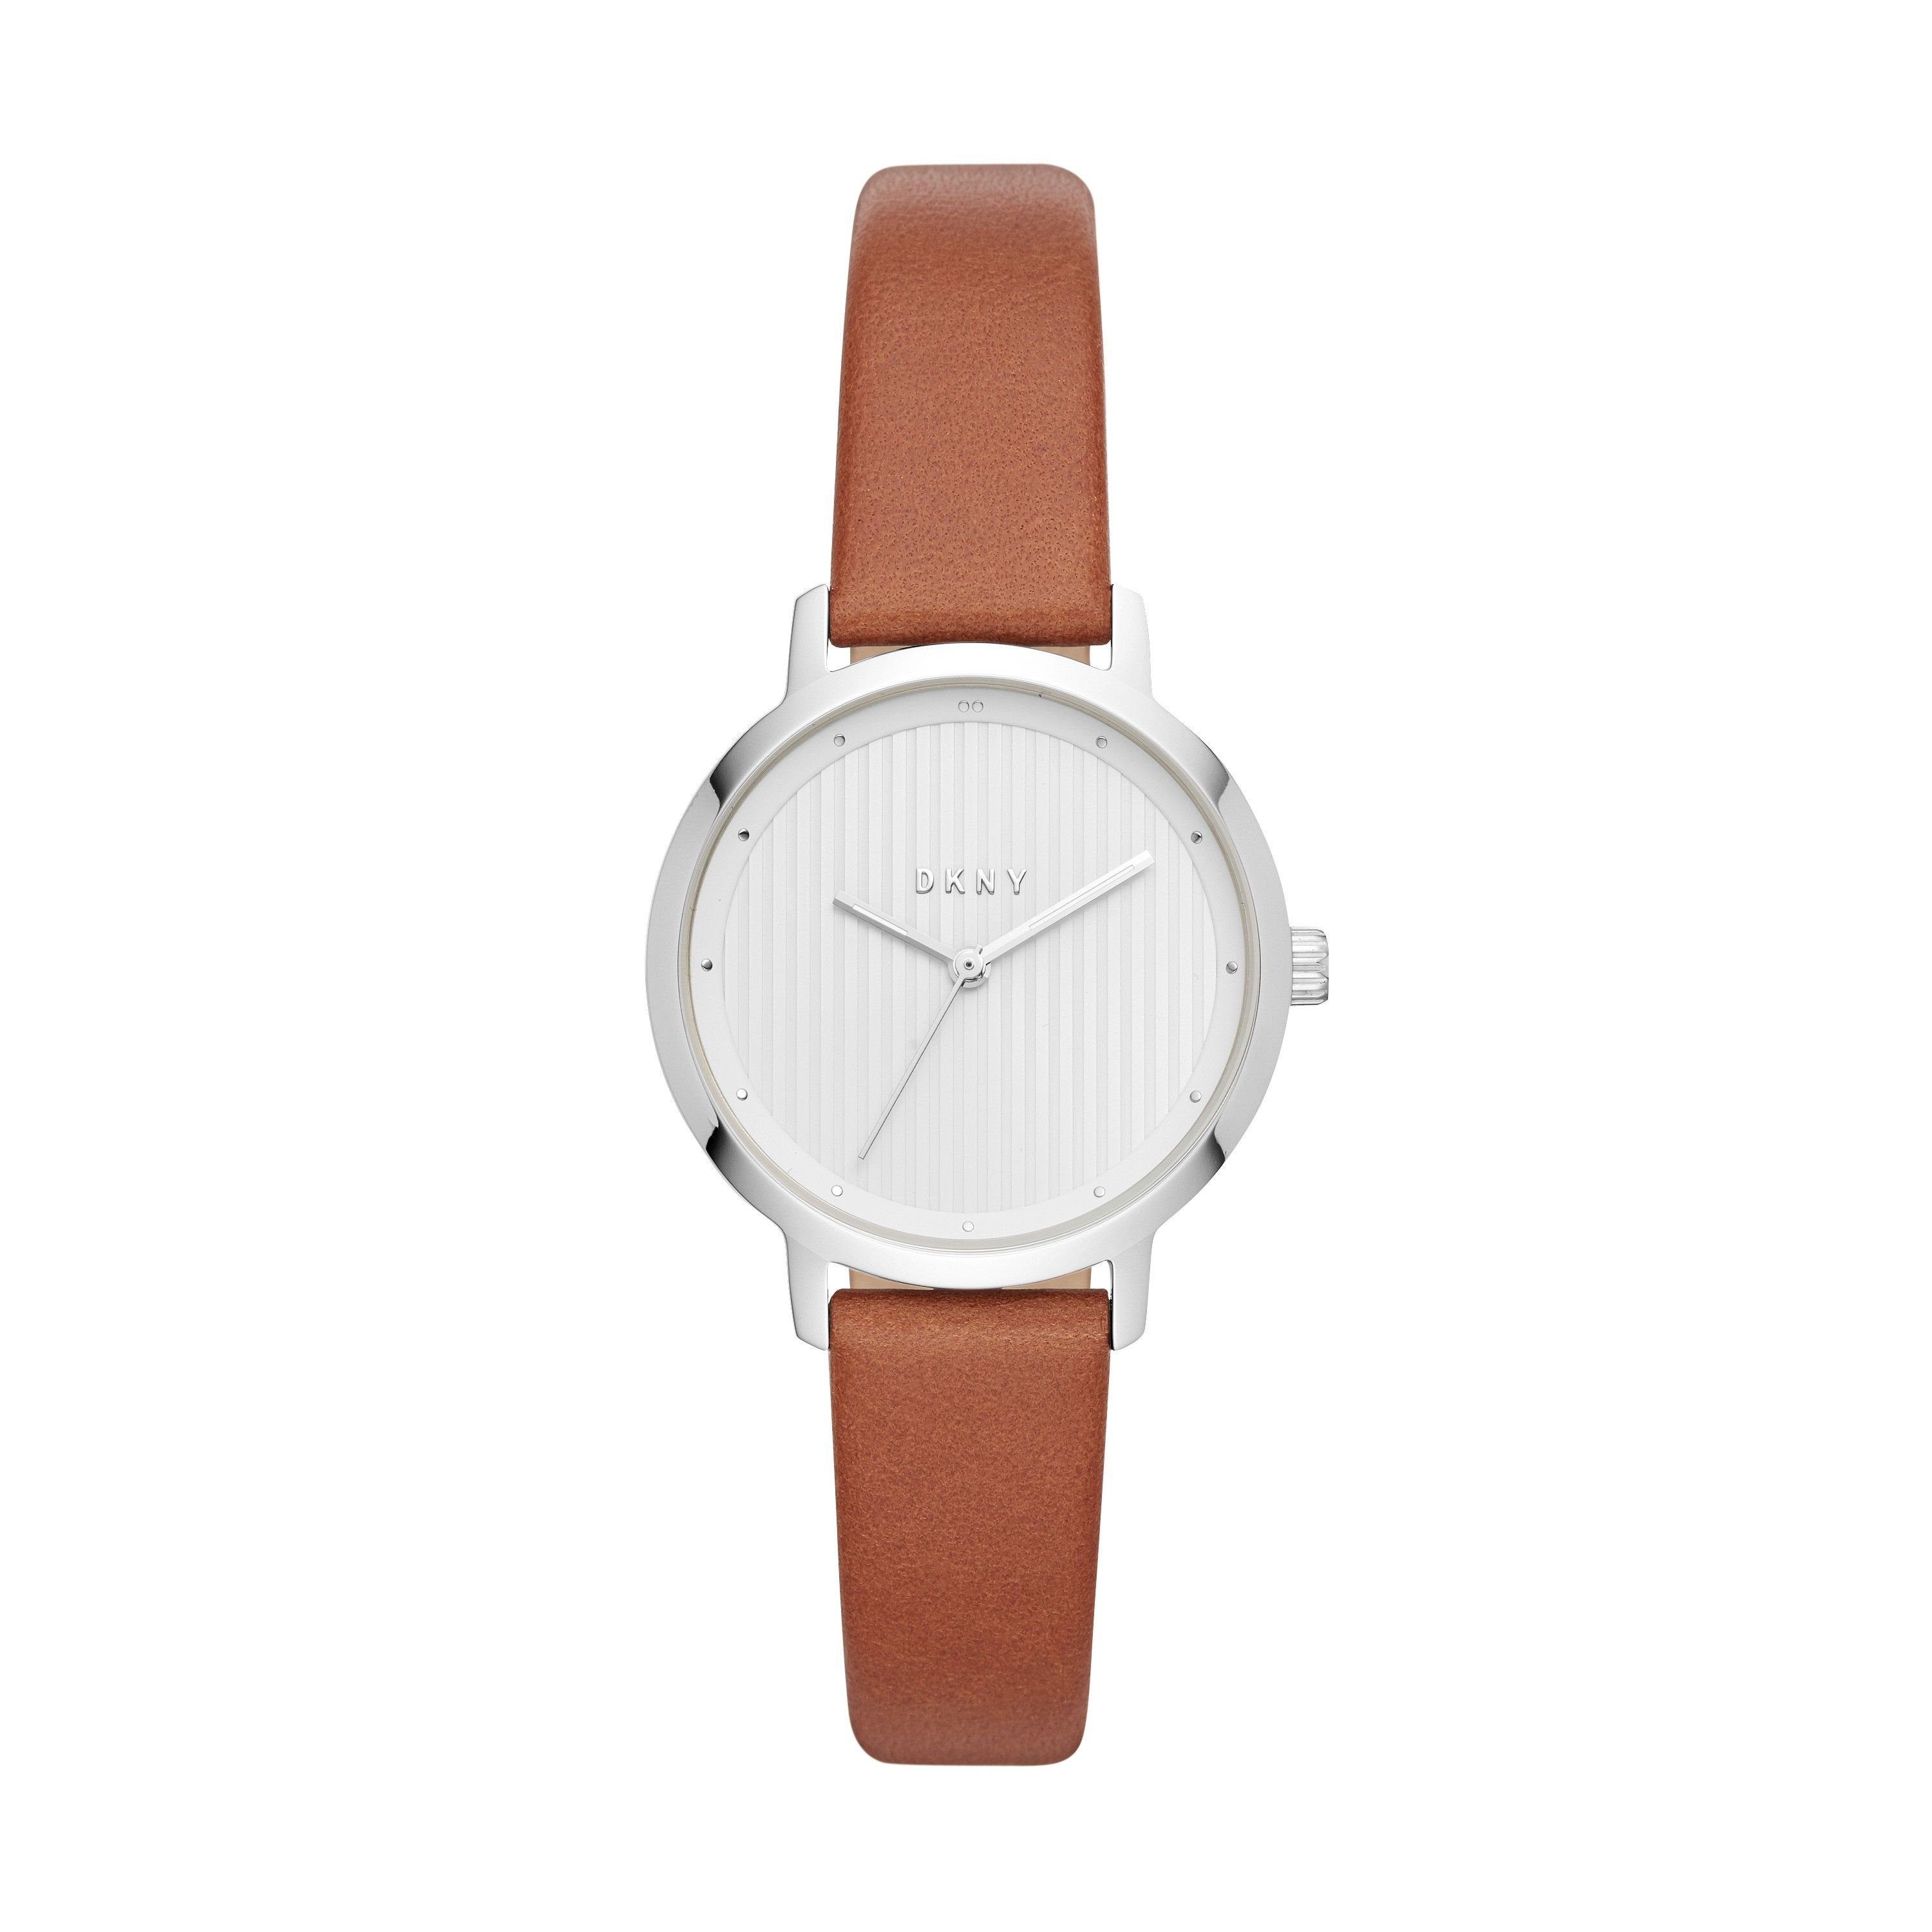 c19808f8ead DKNY NY2676 The Modernist 32 mm Dameshorloge. Timefortrends heeft een  indrukwekkende collectie DKNY-horloges